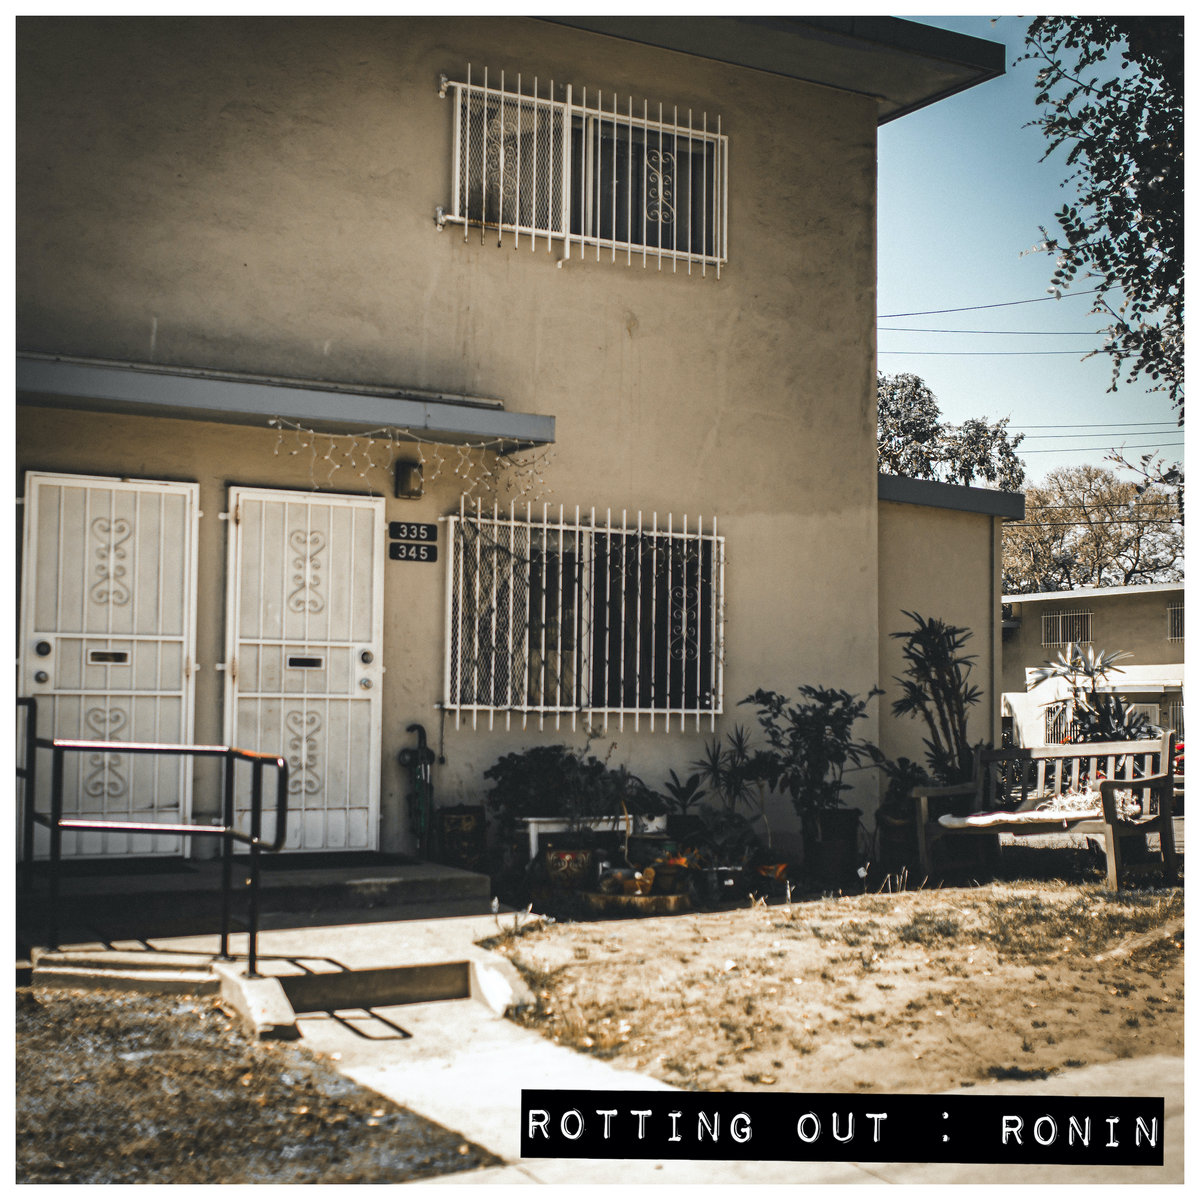 Rotting Out_Ronin